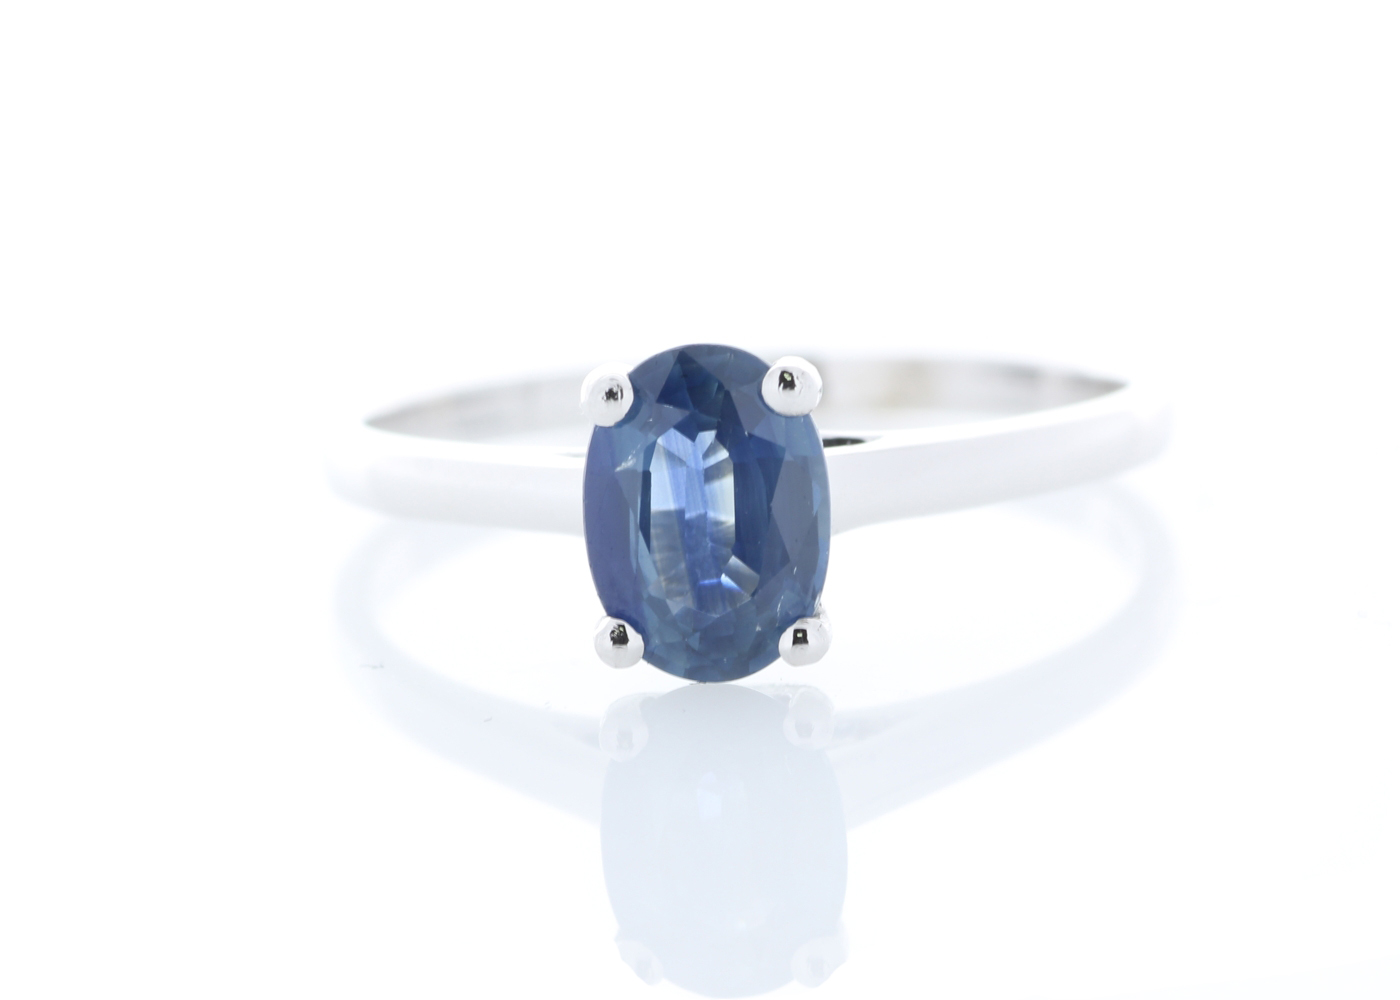 Lot 44 - 9ct White Gold Single Stone Oval Cut Sapphire Ring 1.08 Carats